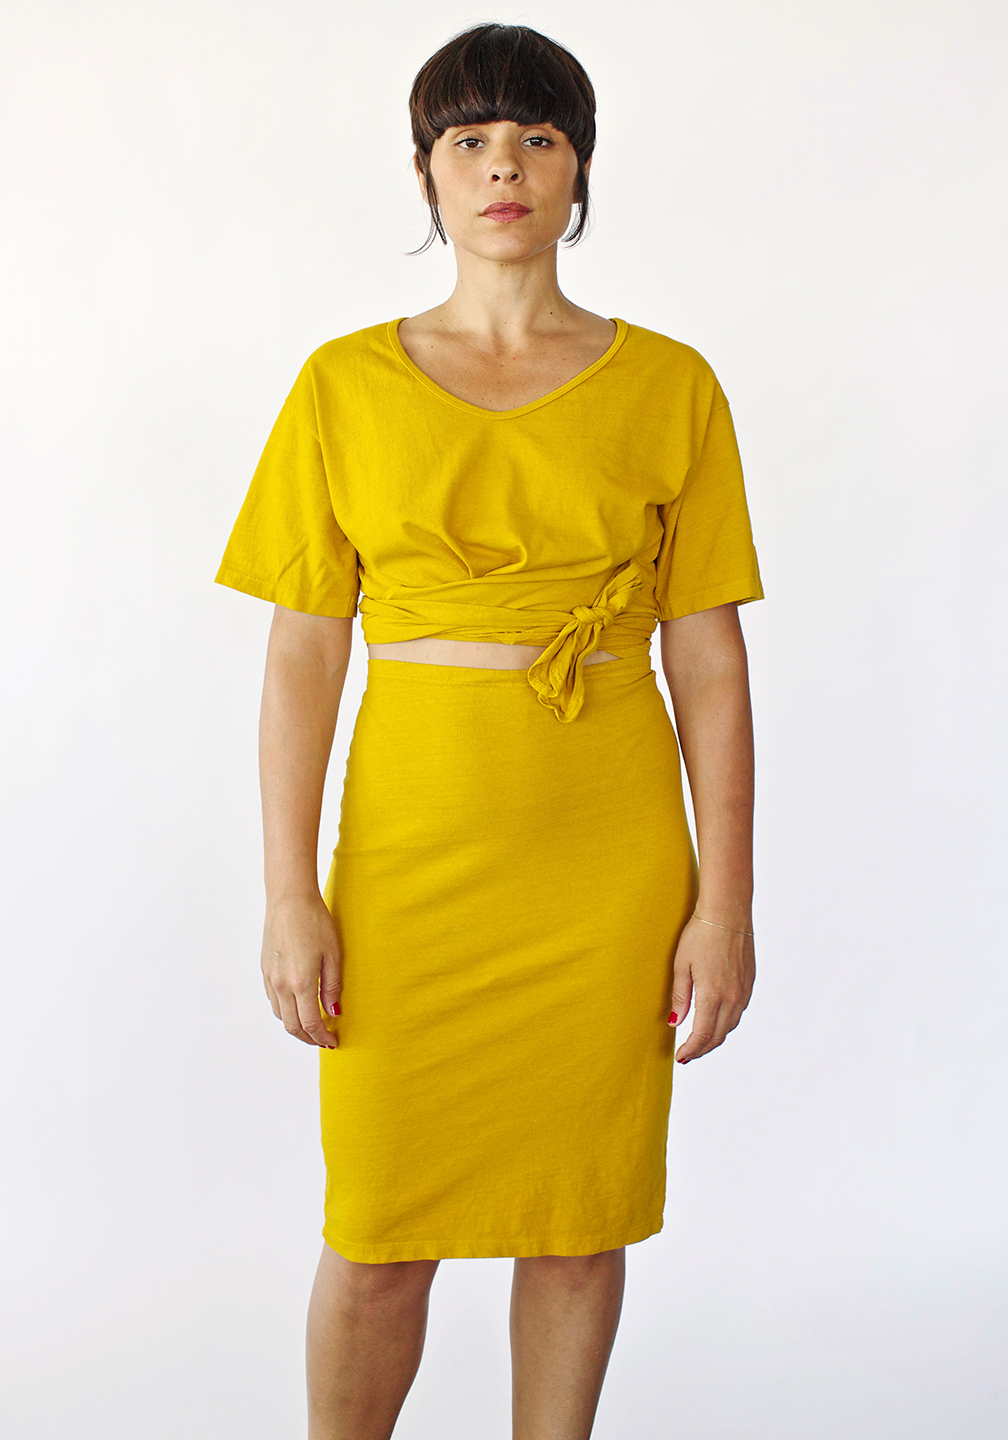 Delores' Twist and Tie Skirt